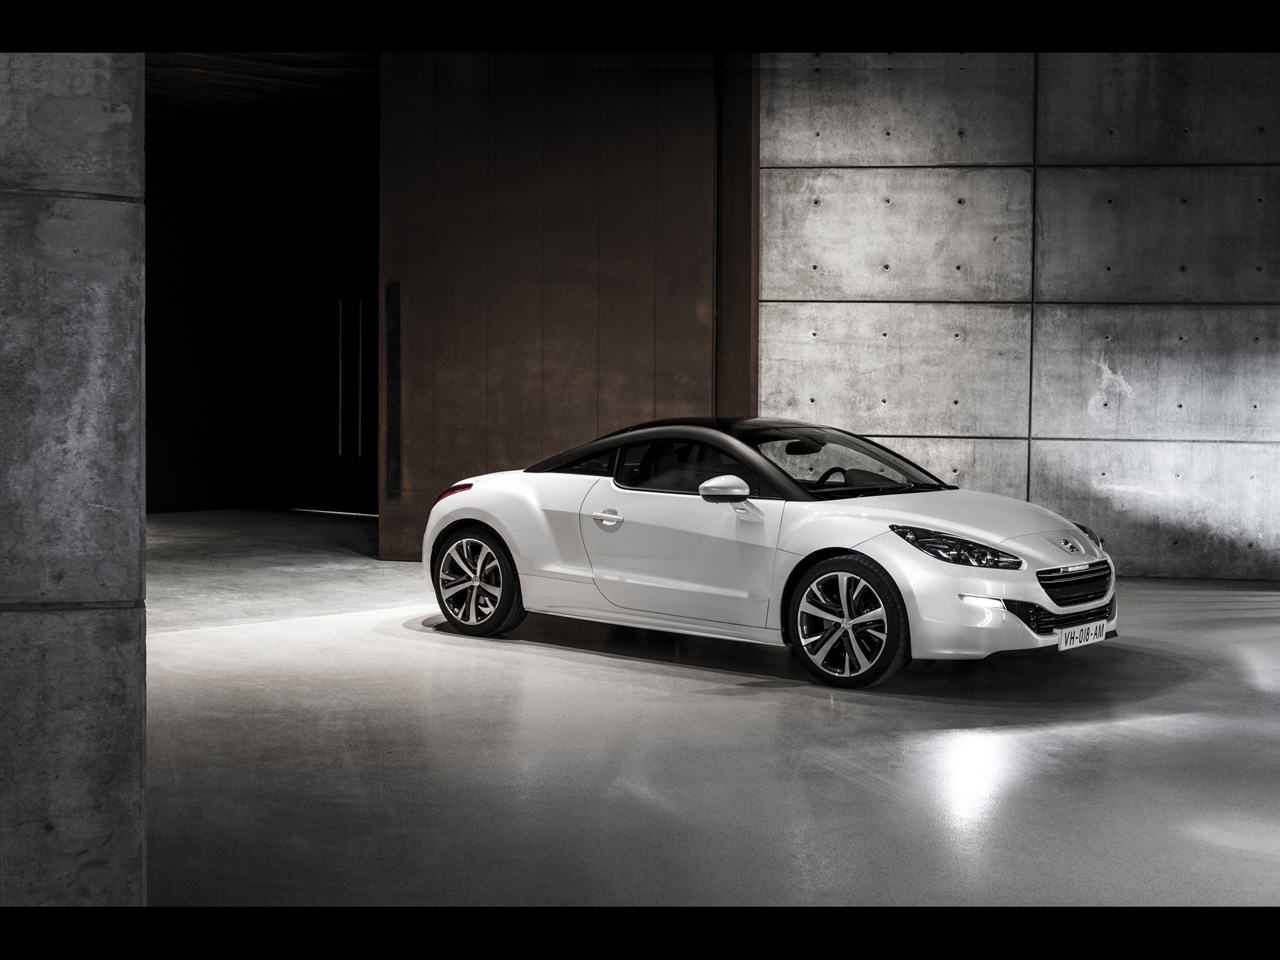 2013 peugeot rcz sports coupe knuckledragger magazine. Black Bedroom Furniture Sets. Home Design Ideas